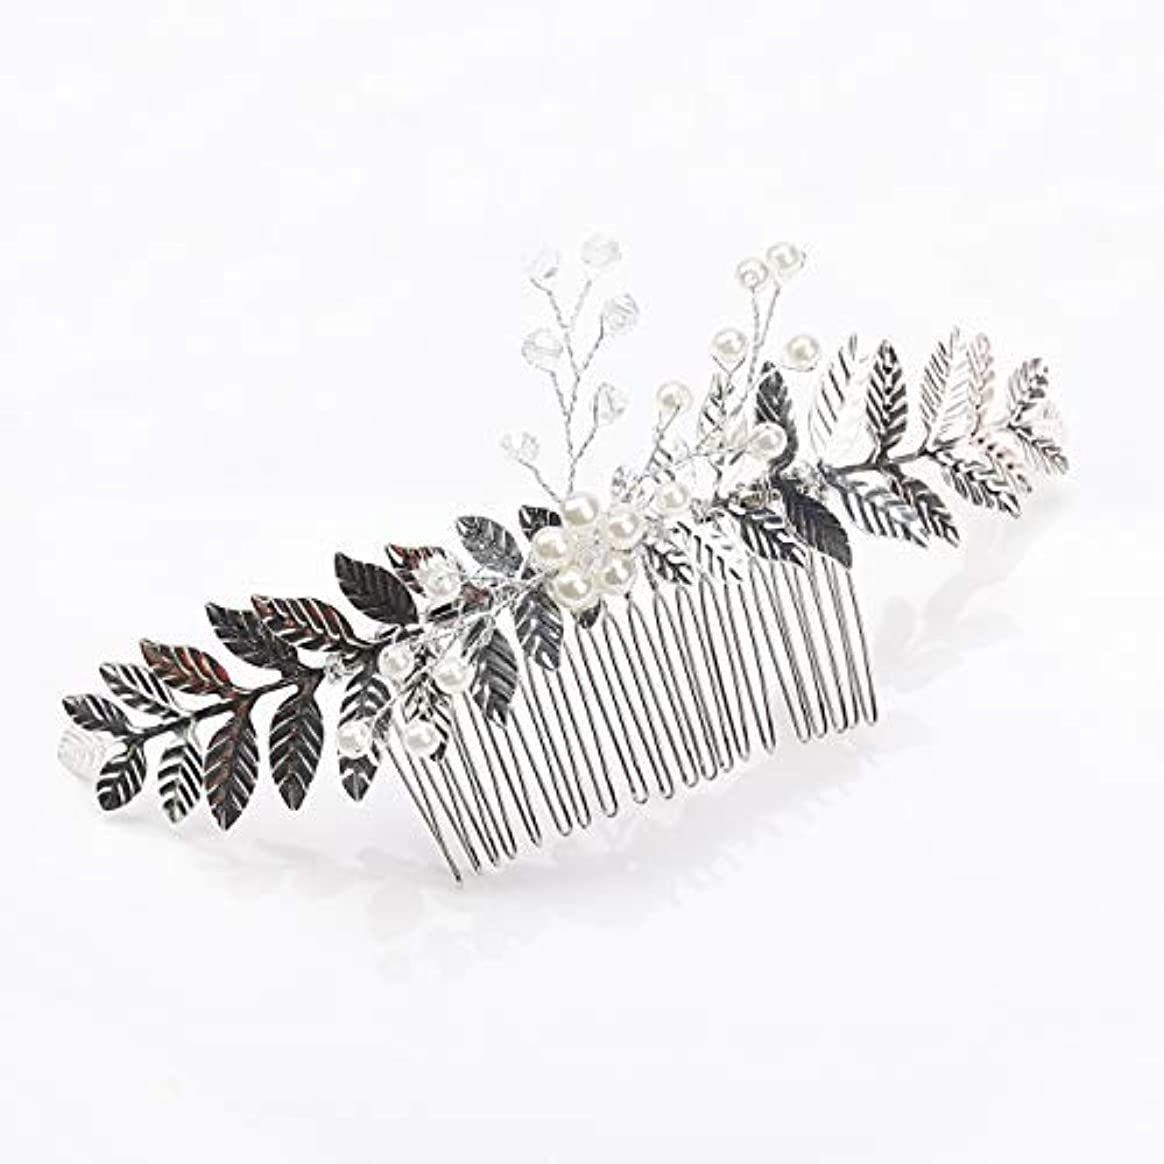 Kercisbeauty Rustic Wedding Oliver Branch Pearl Flower and Crystal Hair Comb for Bride Bridesmaid Prom Headpiece...